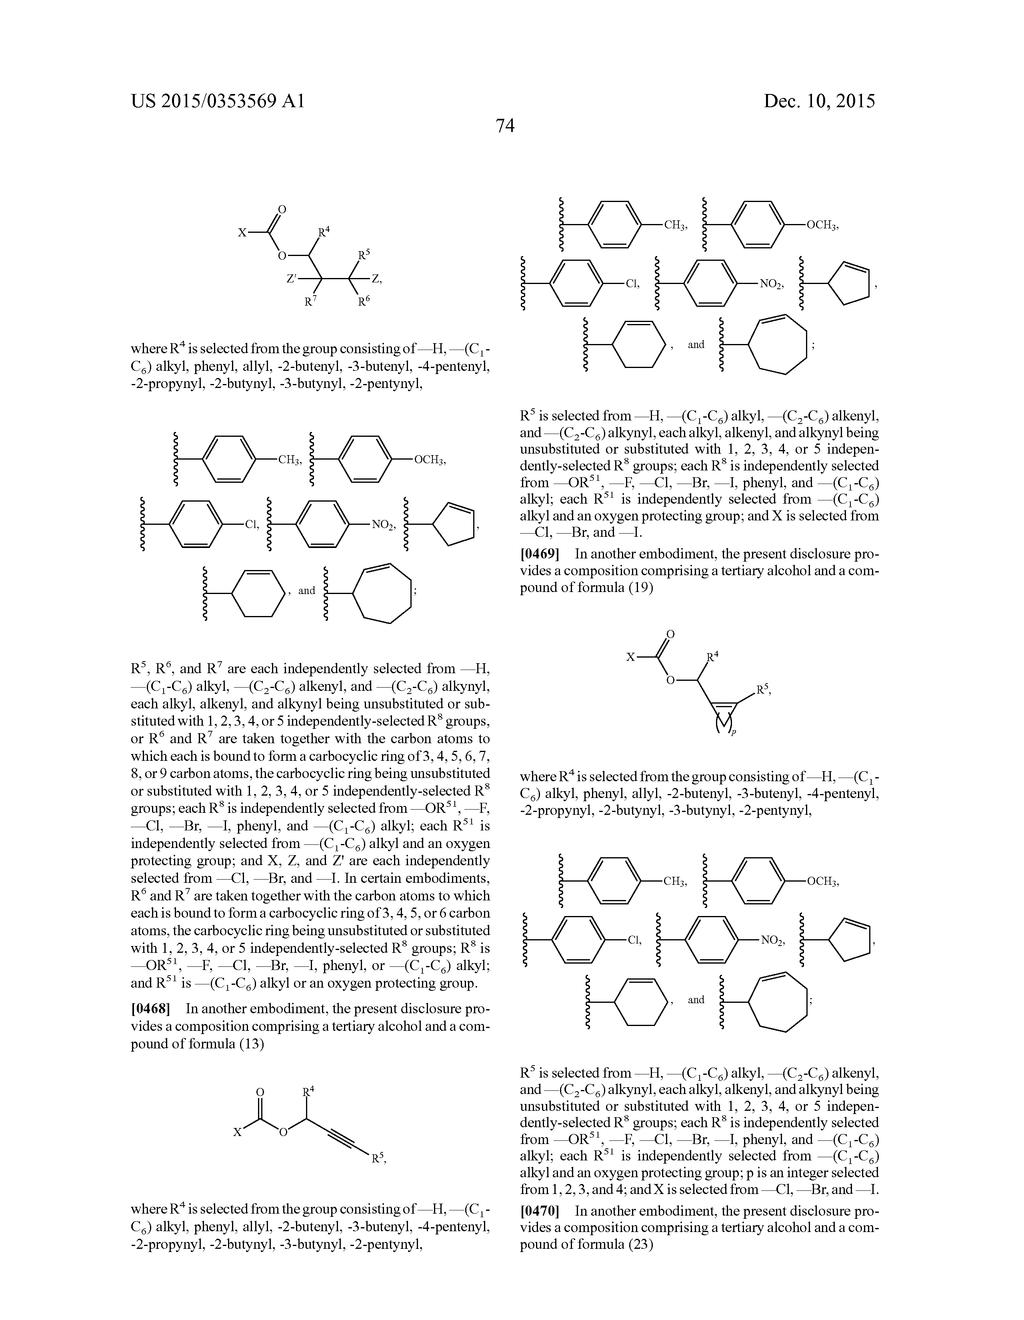 TRANSITION METAL-CATALYZED PROCESSES FOR THE PREPARATION OF N-ALLYL     COMPOUNDS AND USE THEREOF - diagram, schematic, and image 75